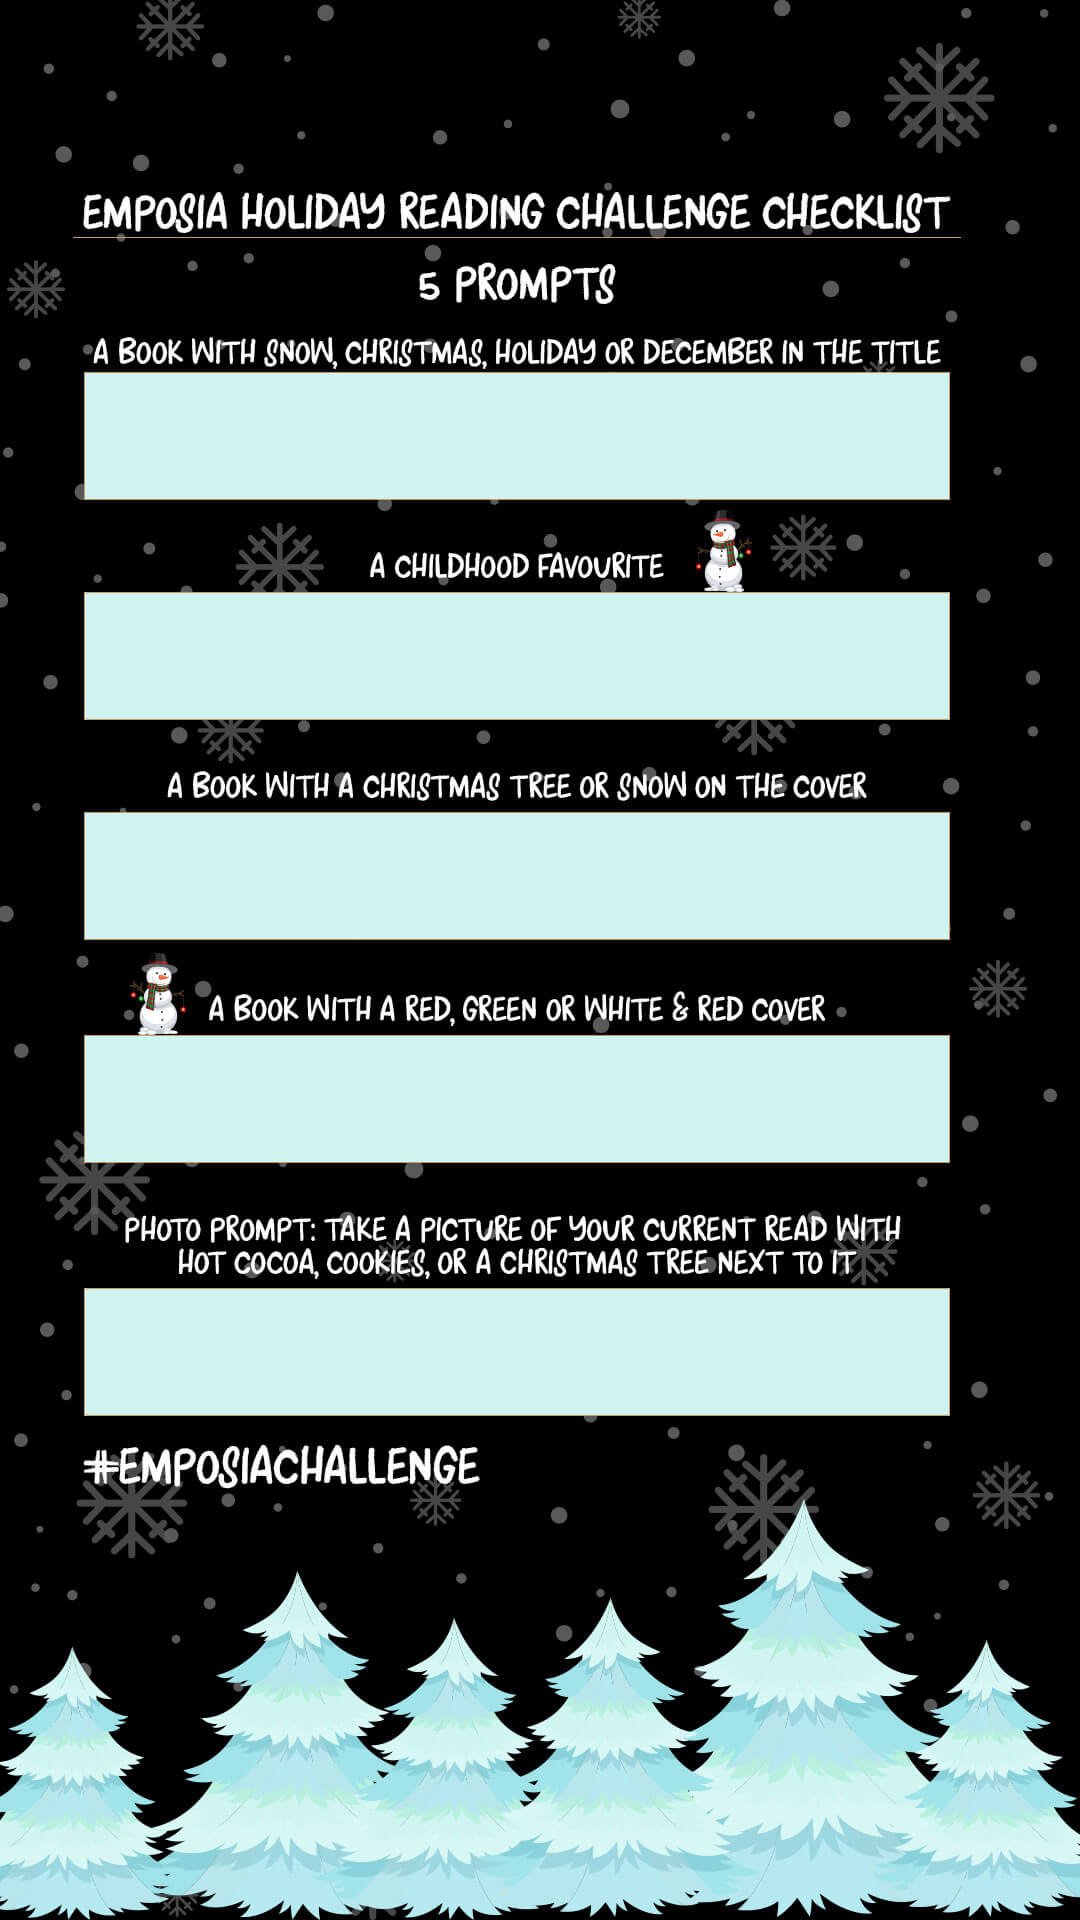 emposia holiday reading challenge for bibliophiles template